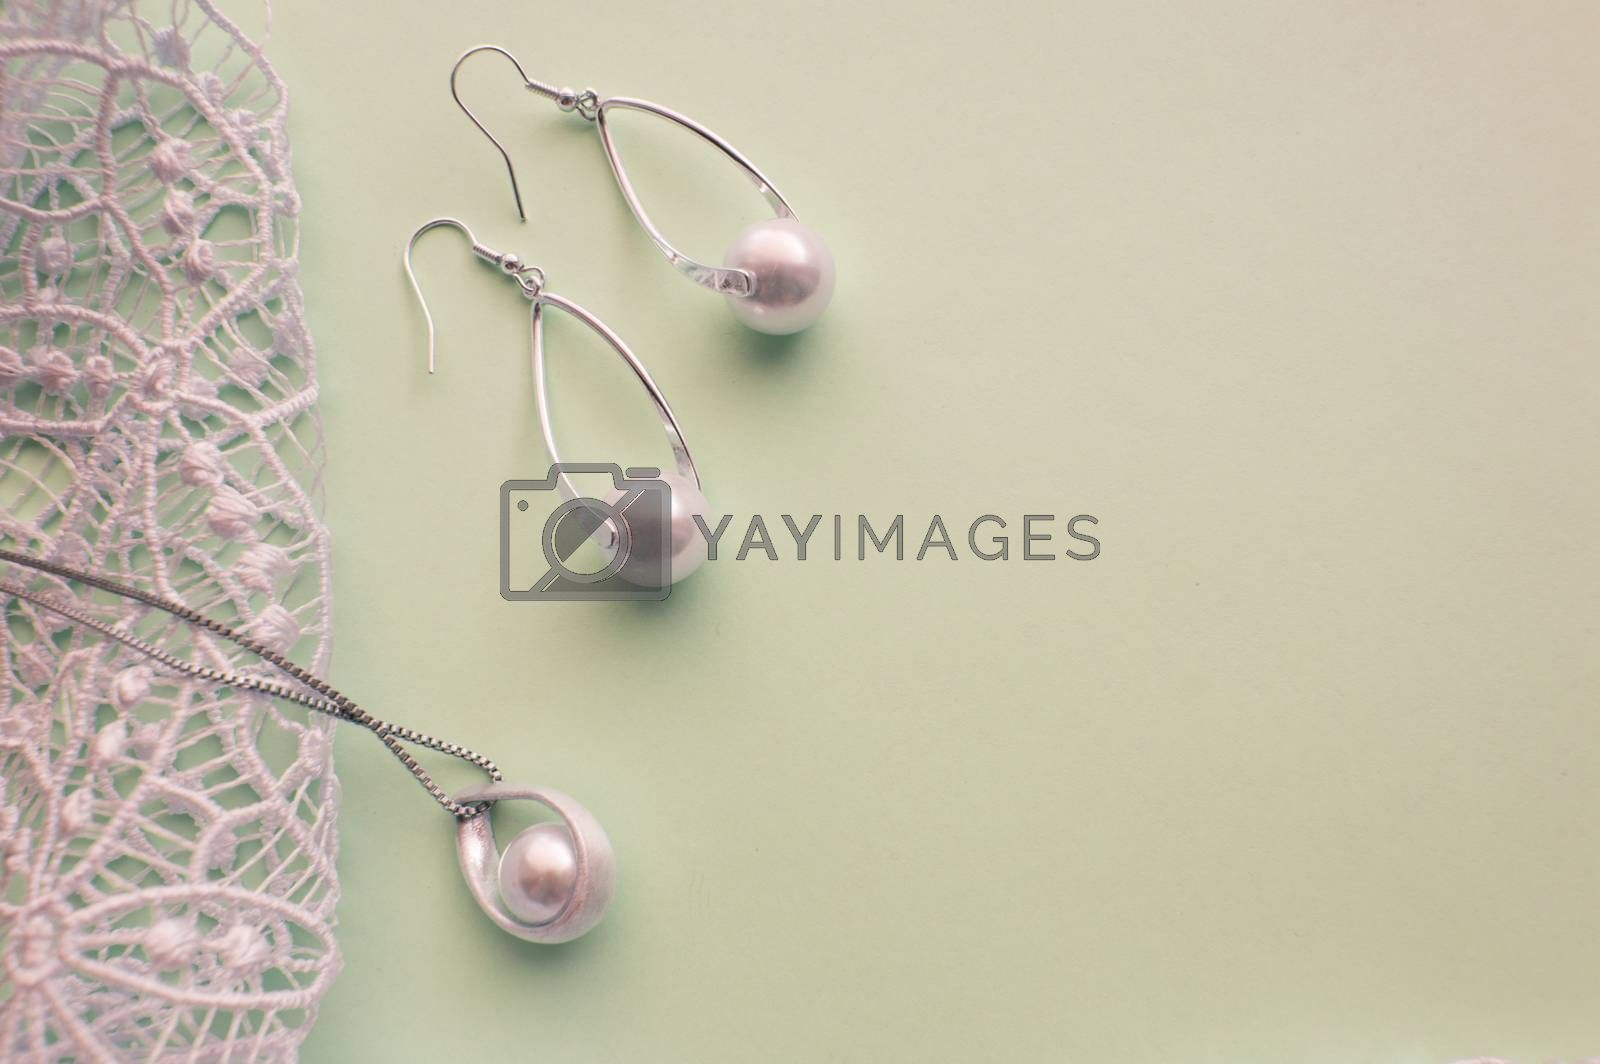 Fashion women's silver accessories - earrings and pendant with pearls on light background with rich openwork lace, top view, flat, space for text by Claire Lucia